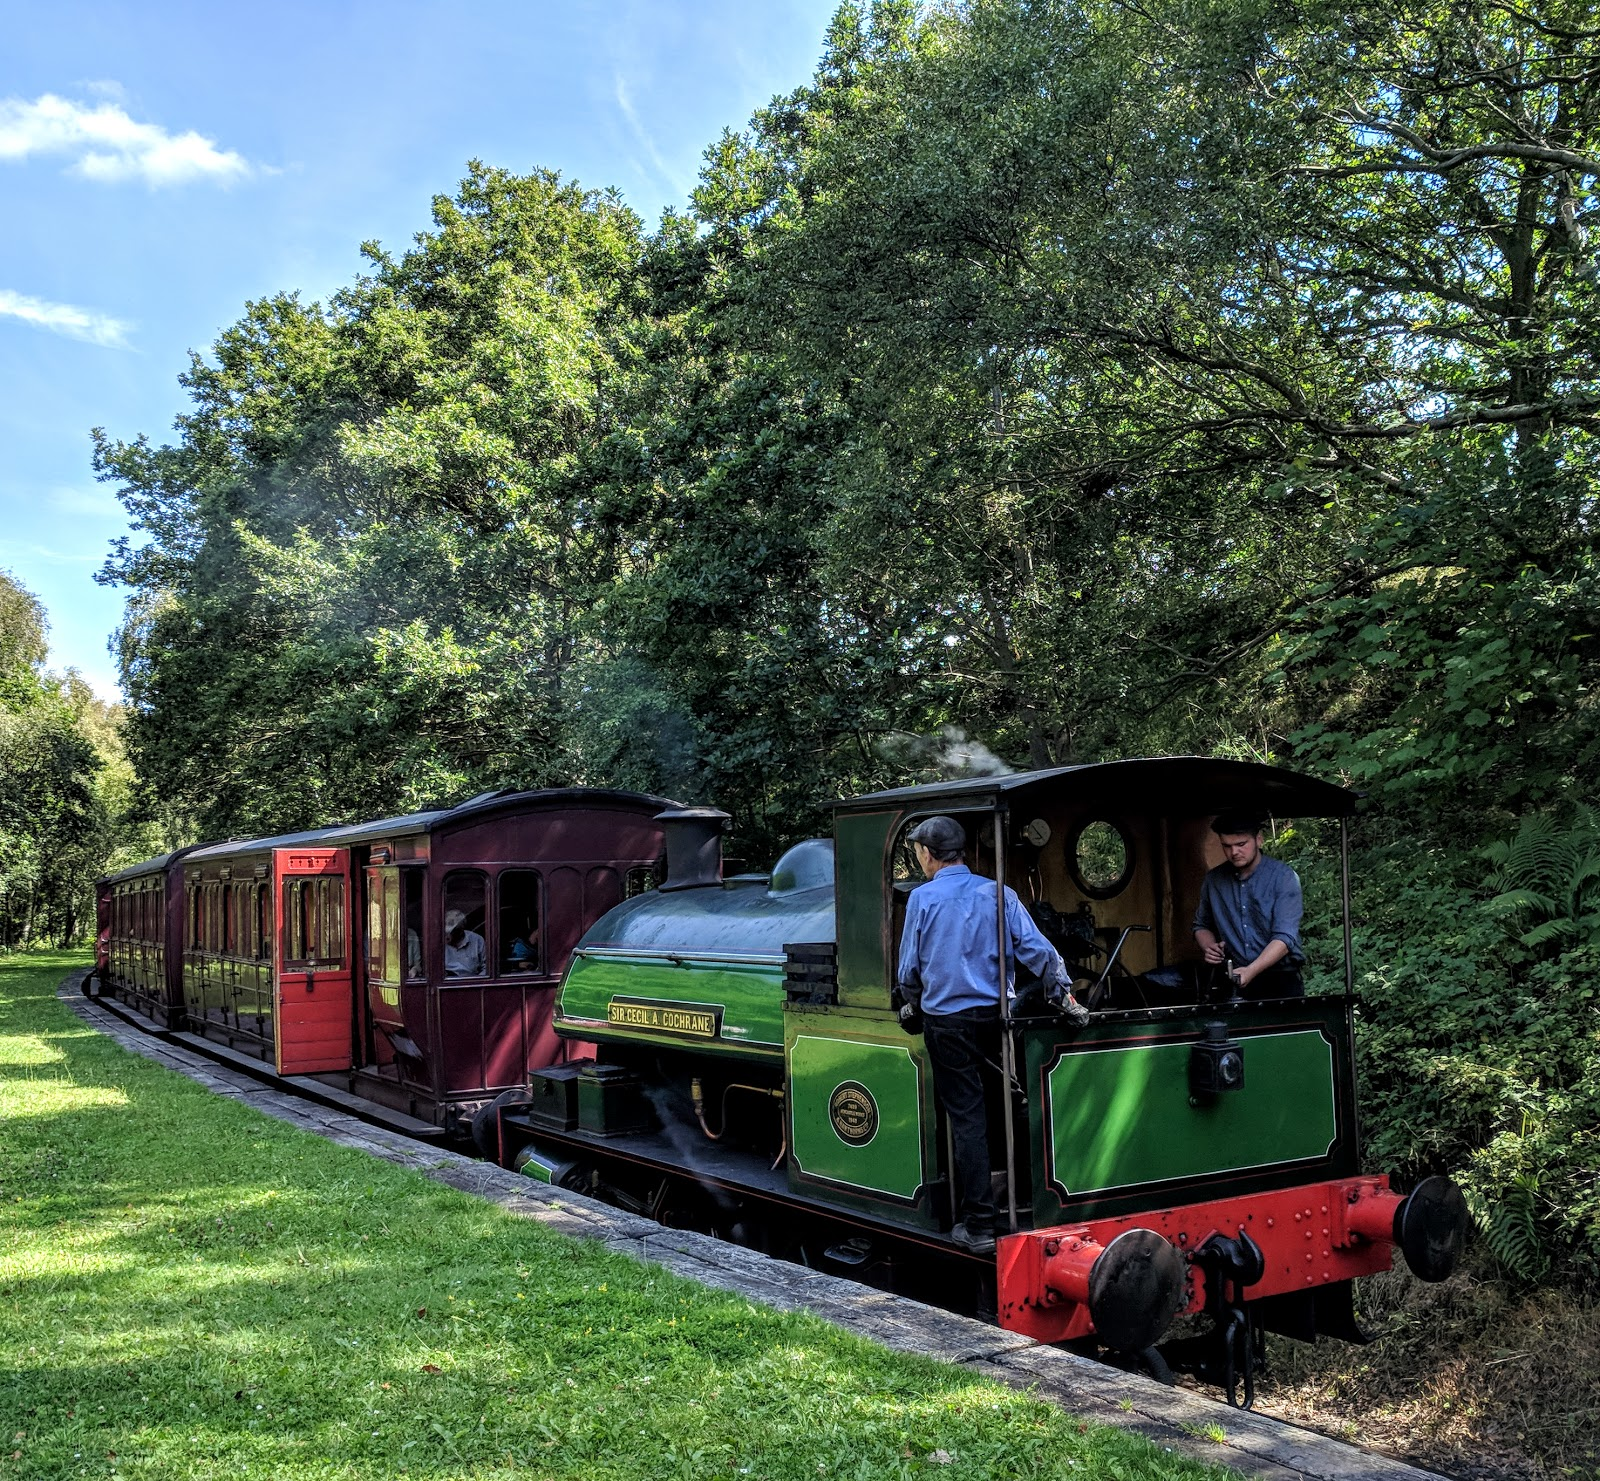 Top 10 train themed days out across North East England  - tanfield railway